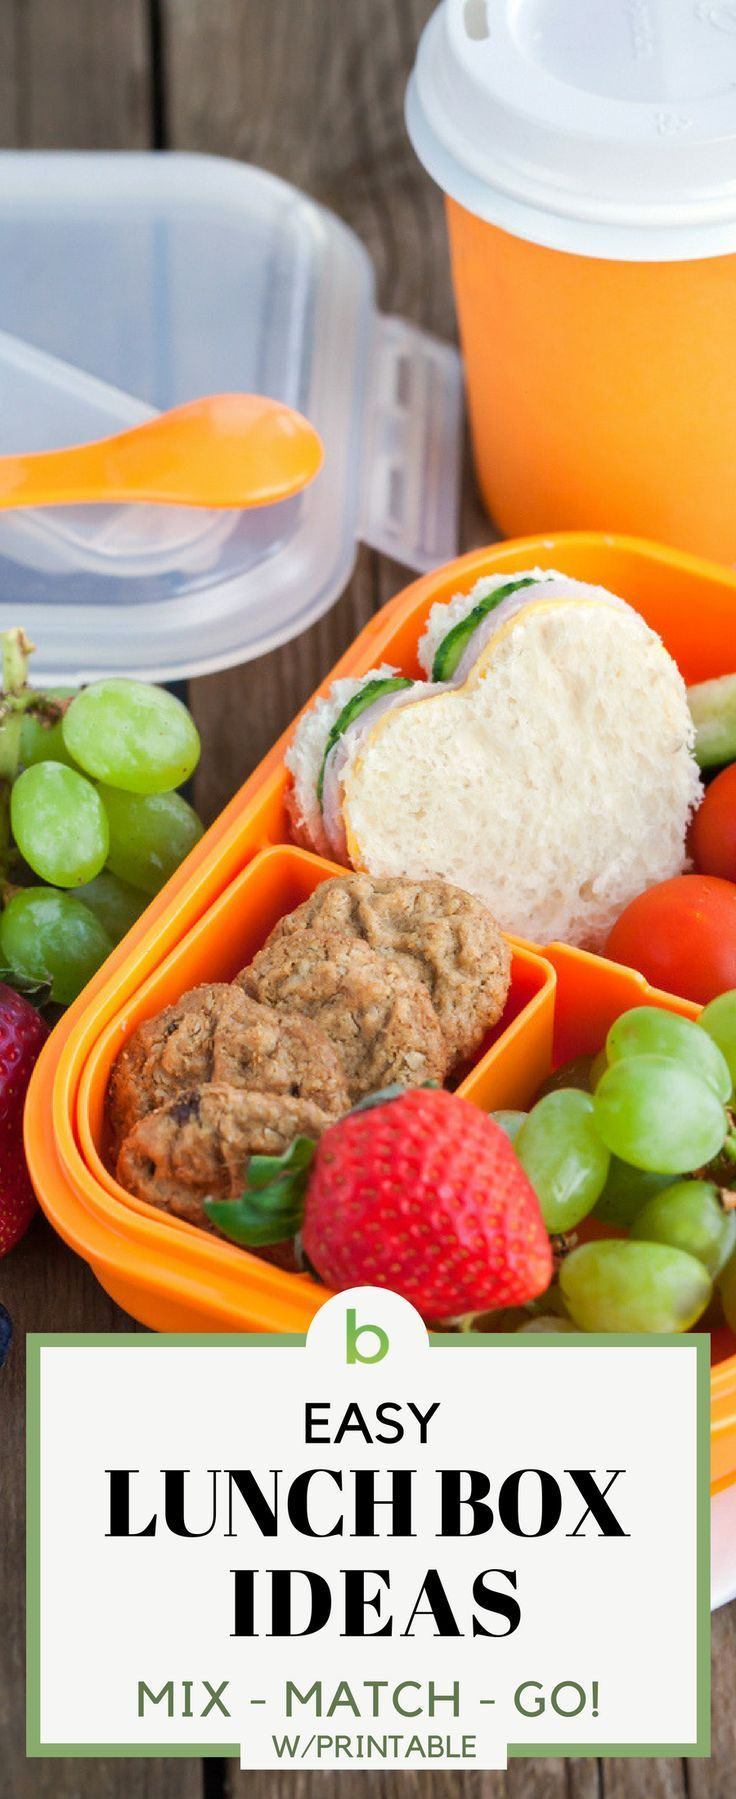 Easy Lunch Box Ideas For Kids [Printable images